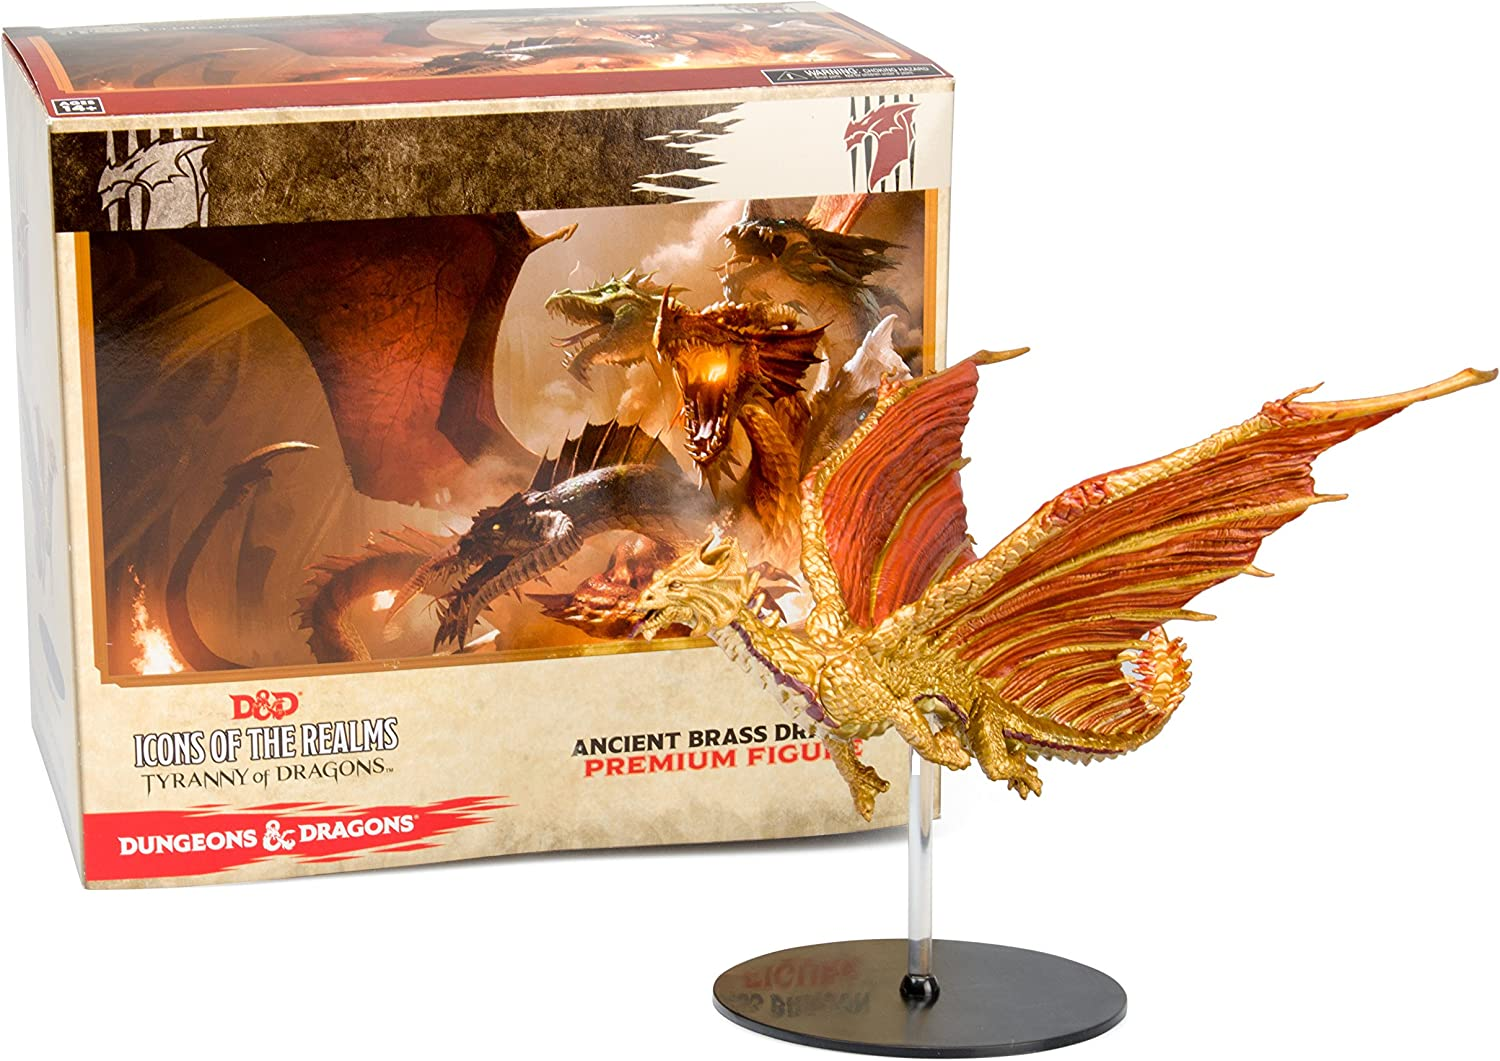 Dungeons & Dragons Miniature Figurines - Ancient Brass Dragon Figure - D&D Icons of the Realms: Tyranny of Dragons Promo: Amazon.es: Juguetes y juegos